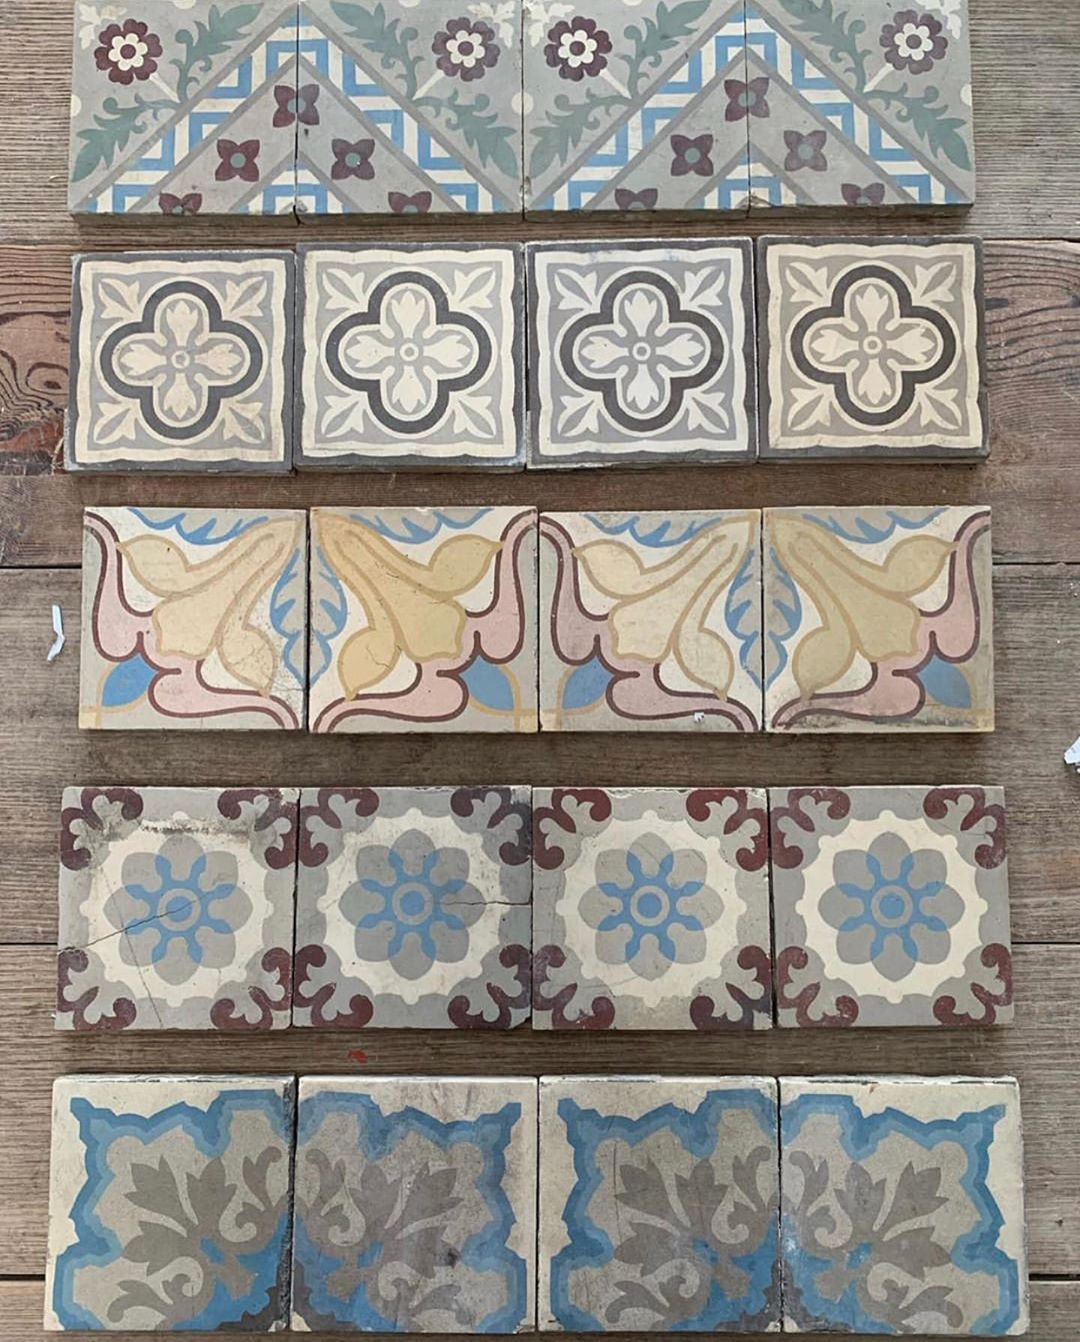 Antique And Encaustic Tiles On Instagram Every Step Takes You Somewhere Steps Risers Uprisers Jatanain Encaustic Tile Antique Tiles Morrocan Floor Tiles